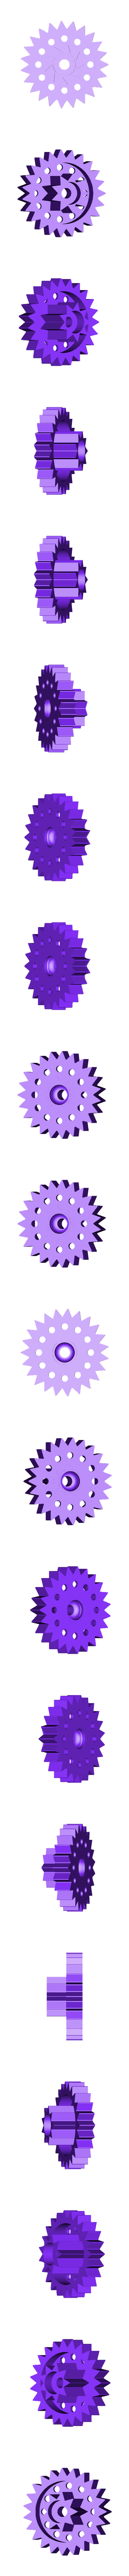 25mmGear.stl Download free STL file Crazy Cogs - Gear Play Set • 3D printer template, PapaBravo